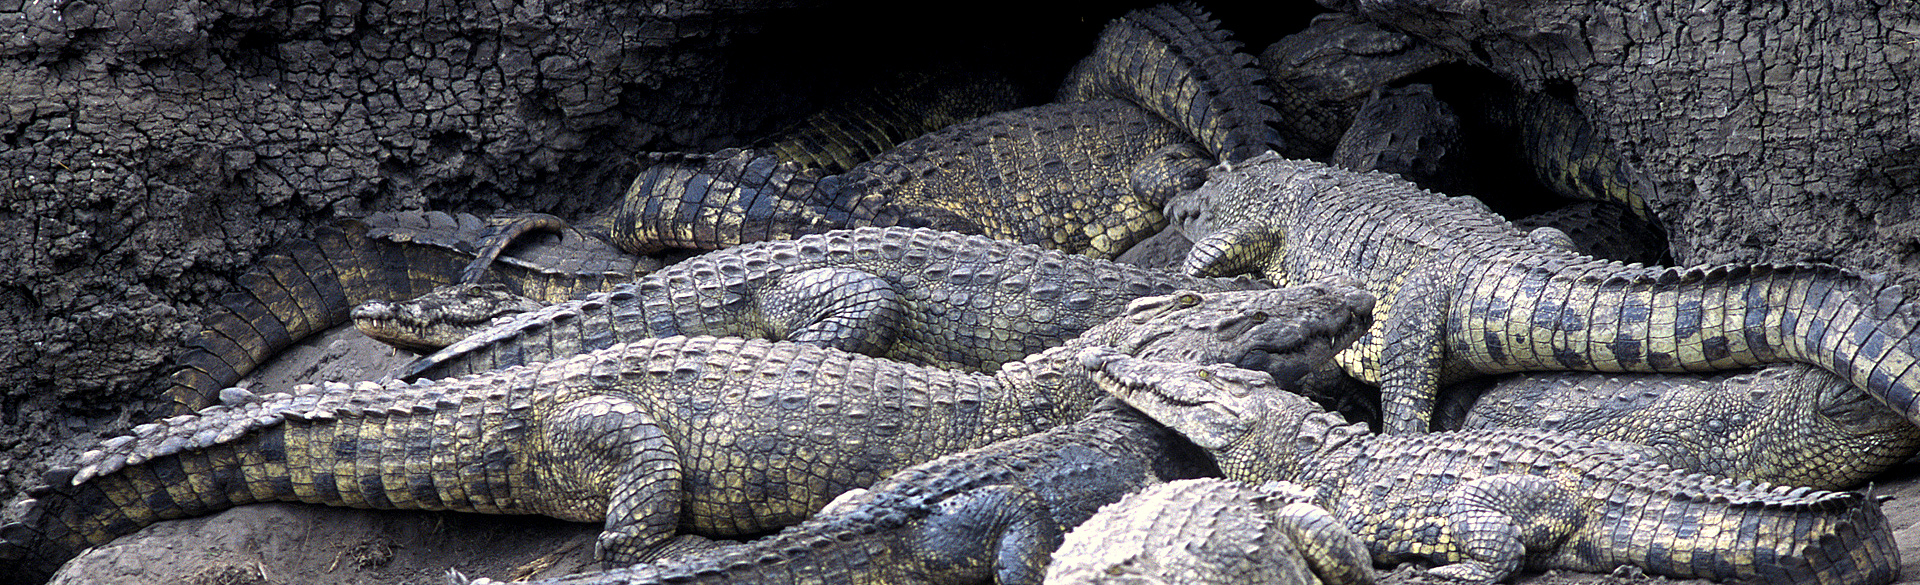 A menacing pile of crocodiles in Katavi courtesy Nomad Safaris